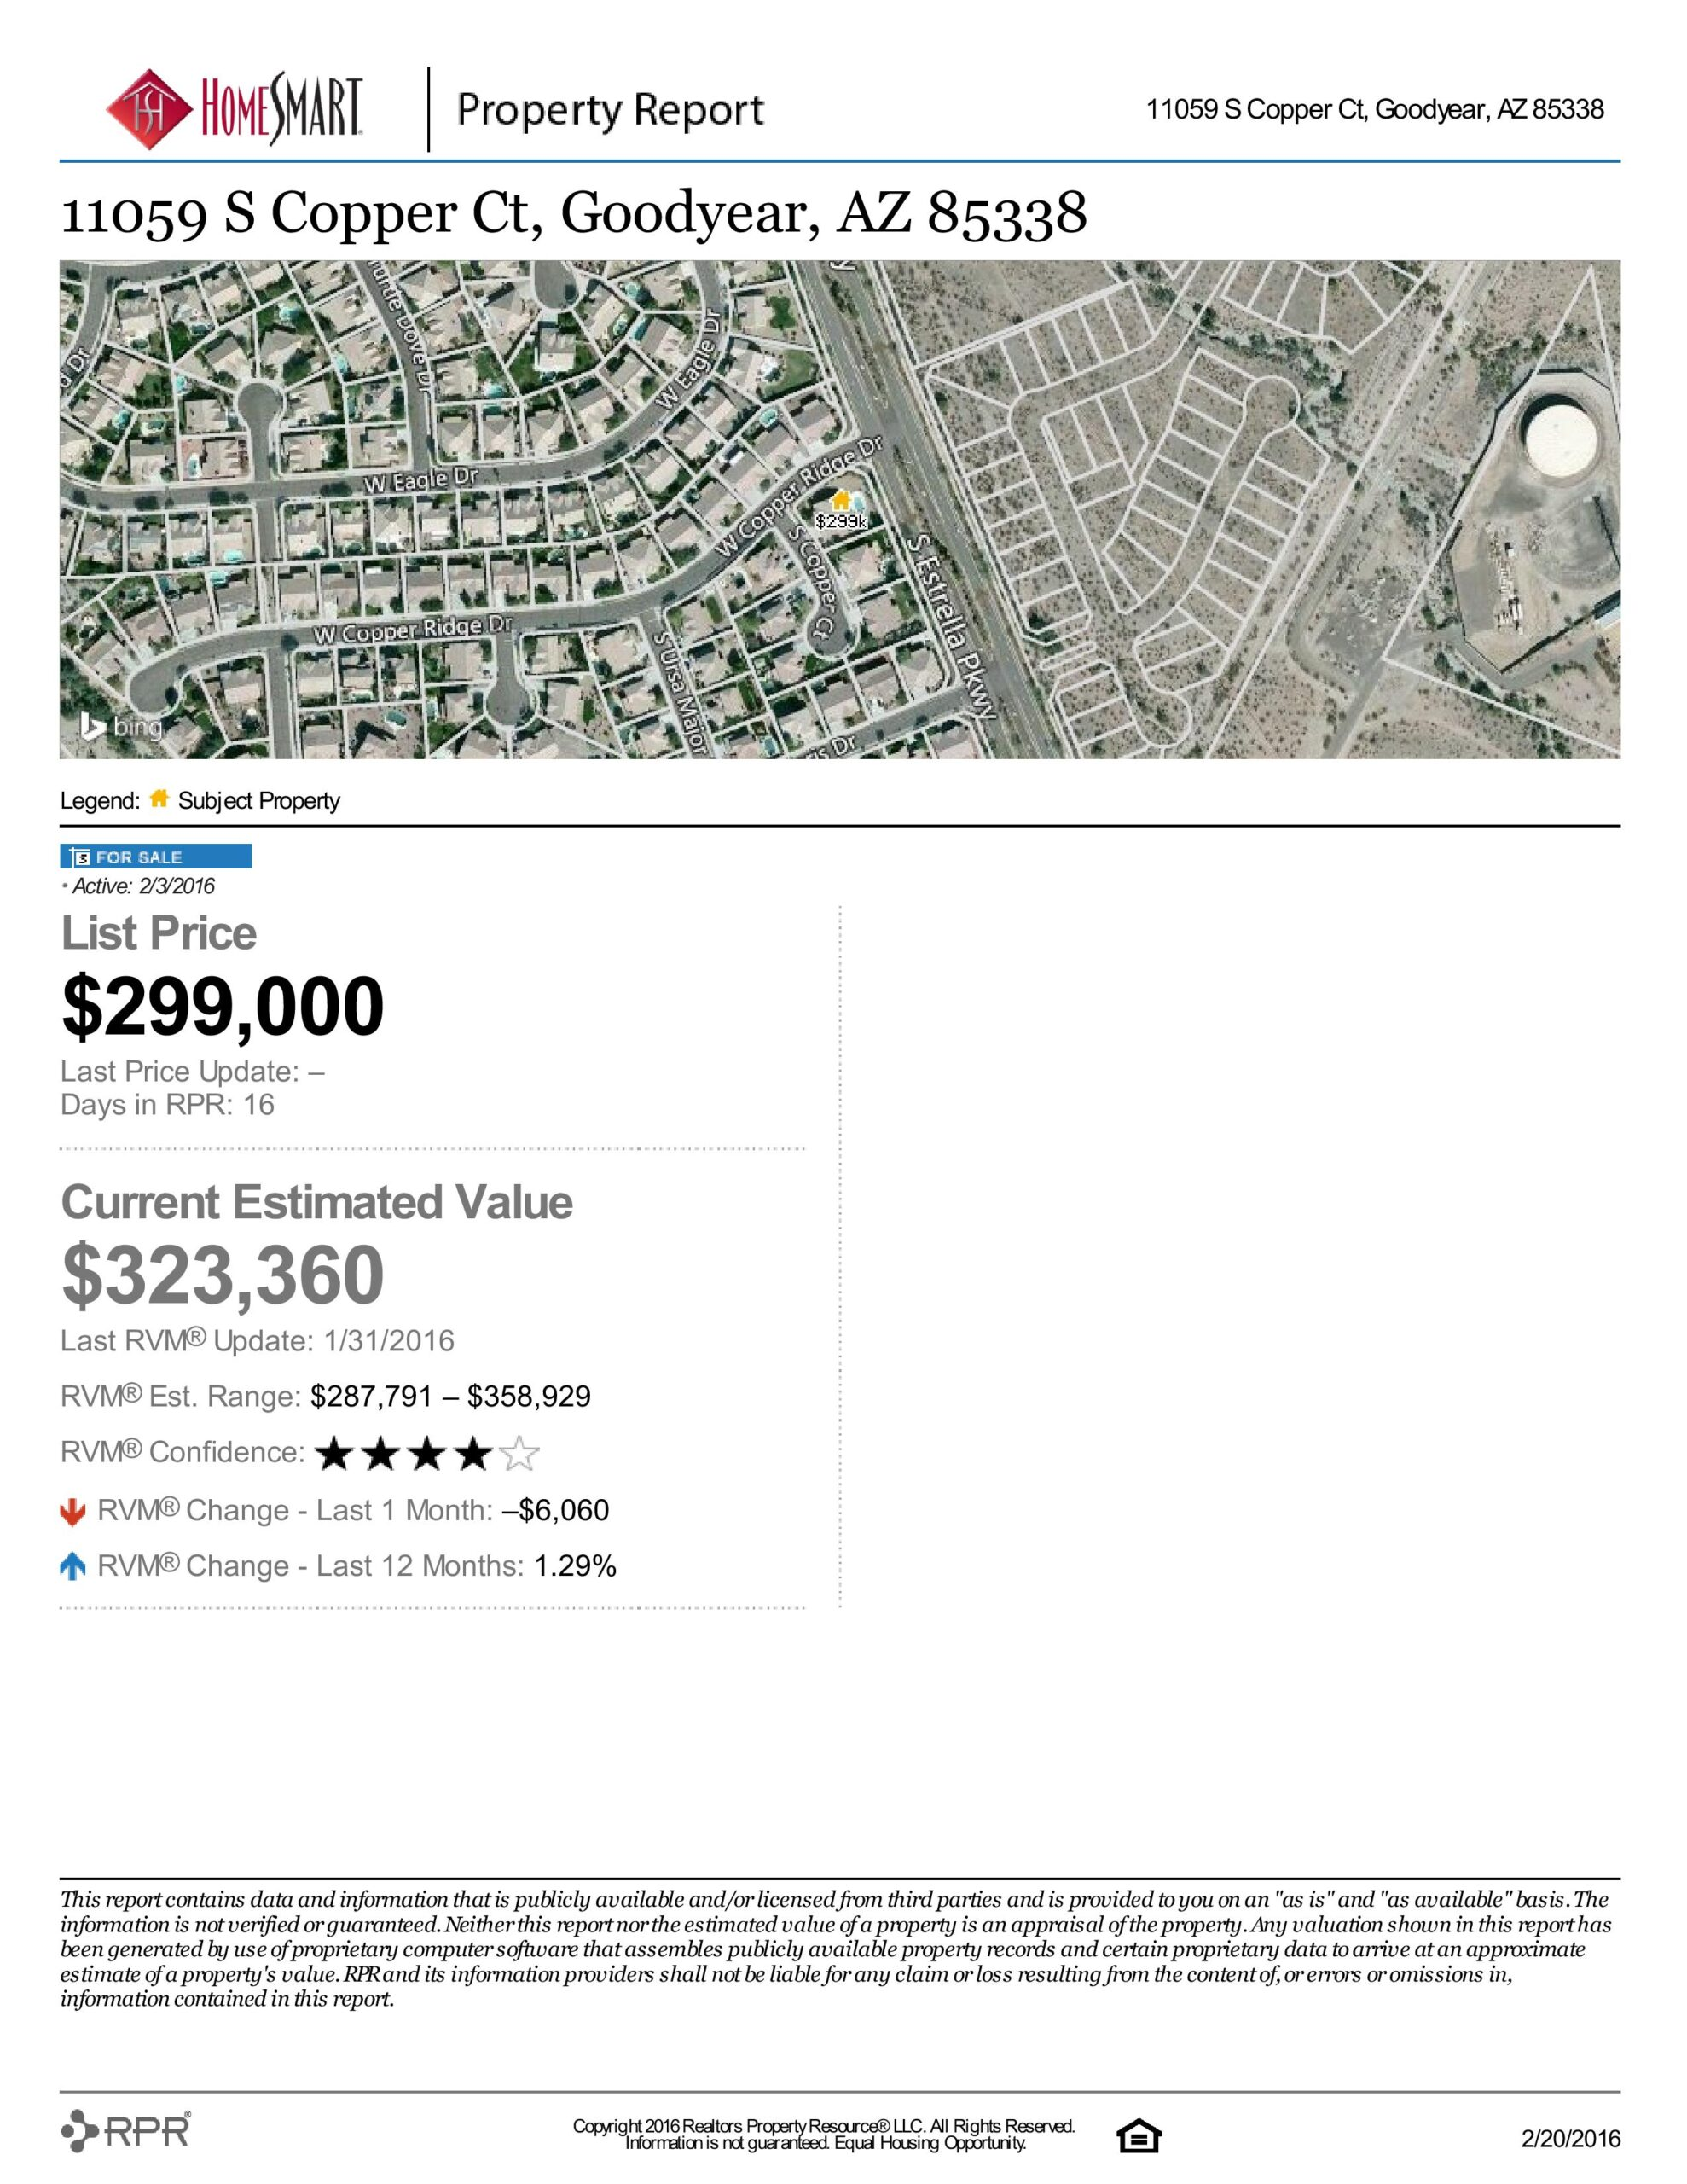 11059 S Copper Ct Location On The Map And List Price And Current Estimated Value